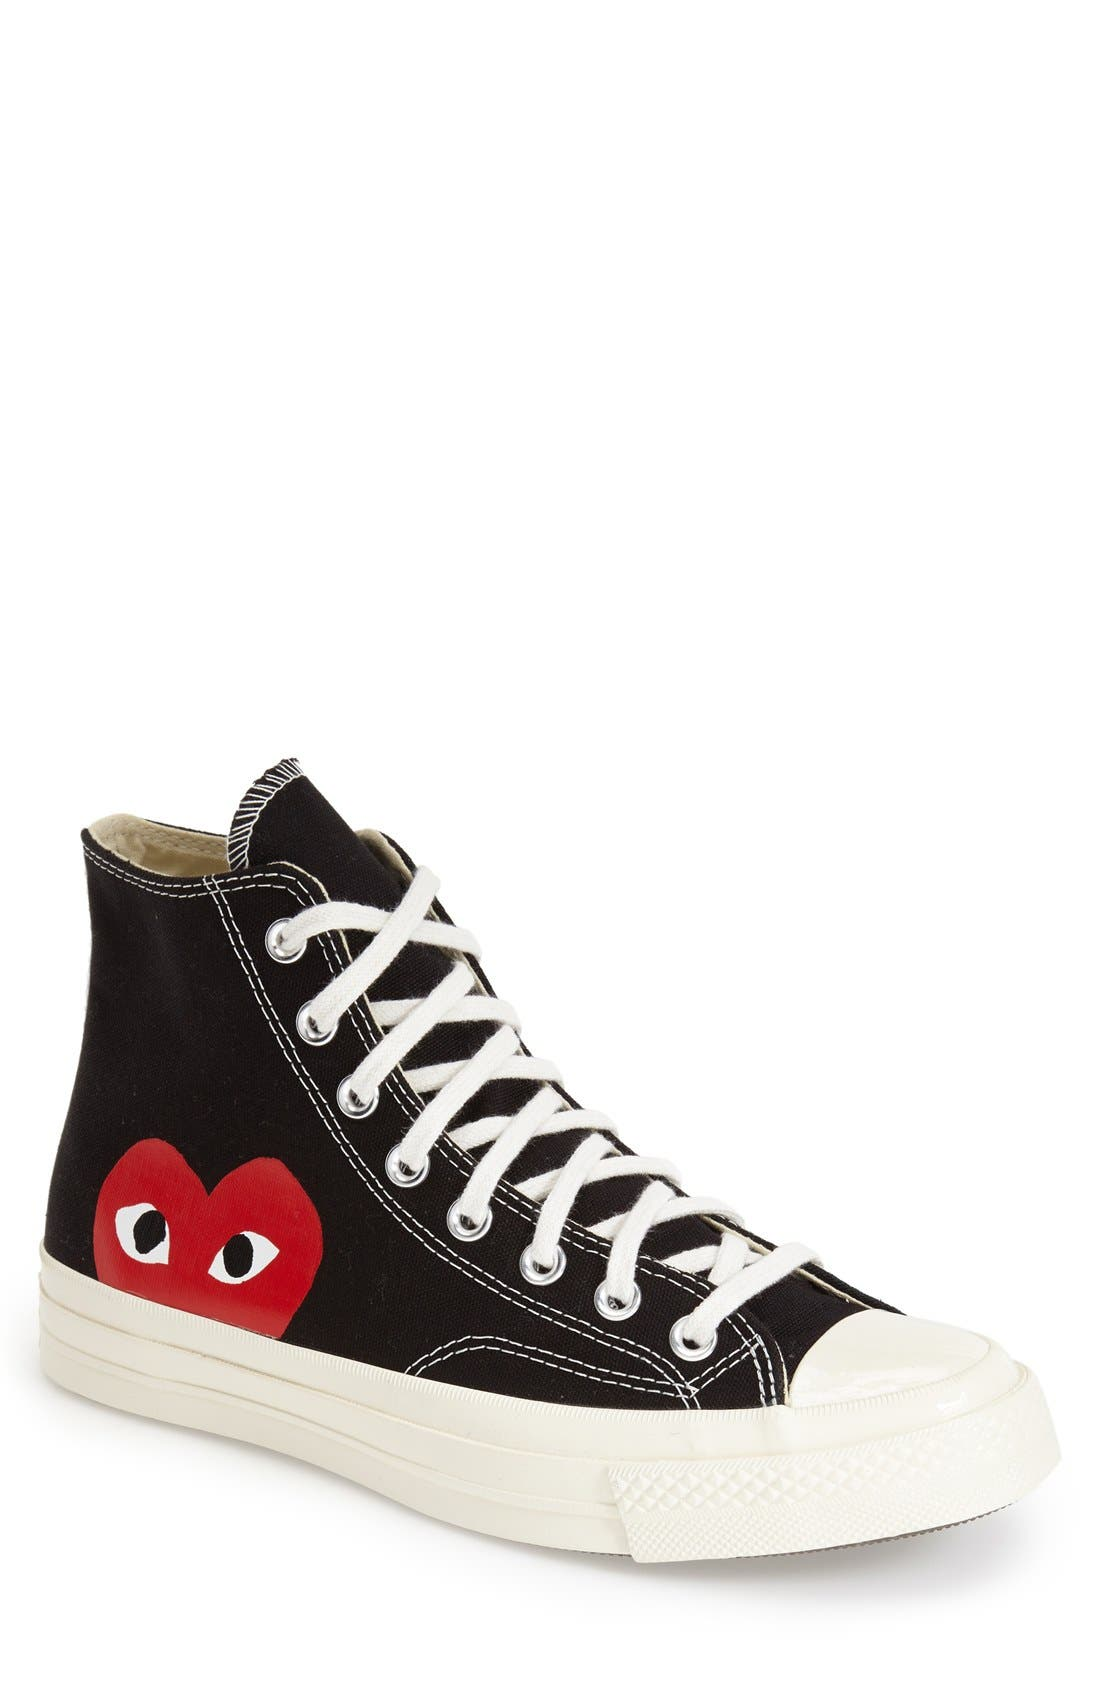 Comme des Garçons PLAY x Converse Chuck Taylor<sup>®</sup> - Hidden Heart High Top Sneaker,                         Main,                         color, Black Canvas